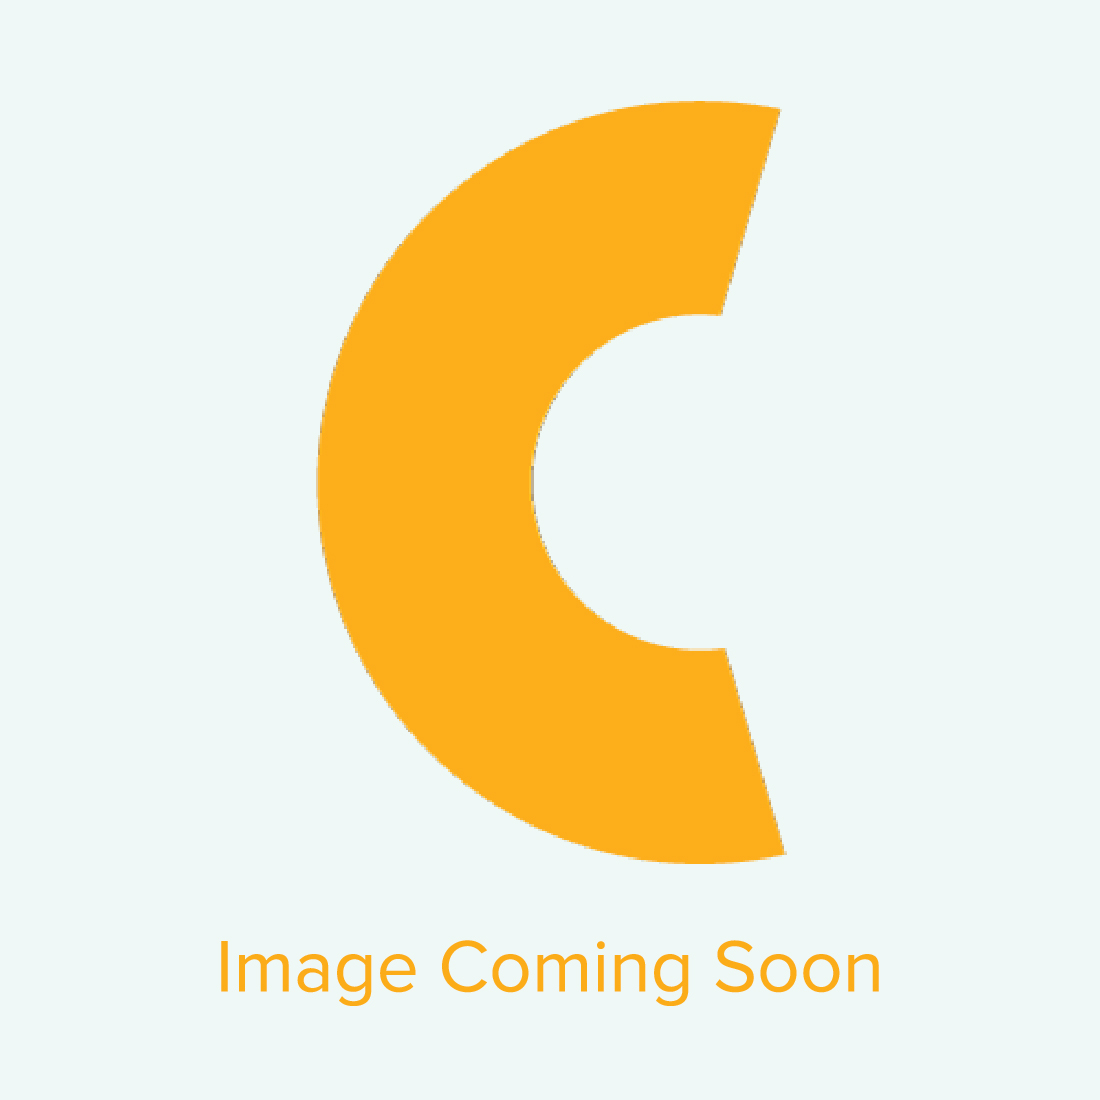 Loose Leaf Rings (200/pack)